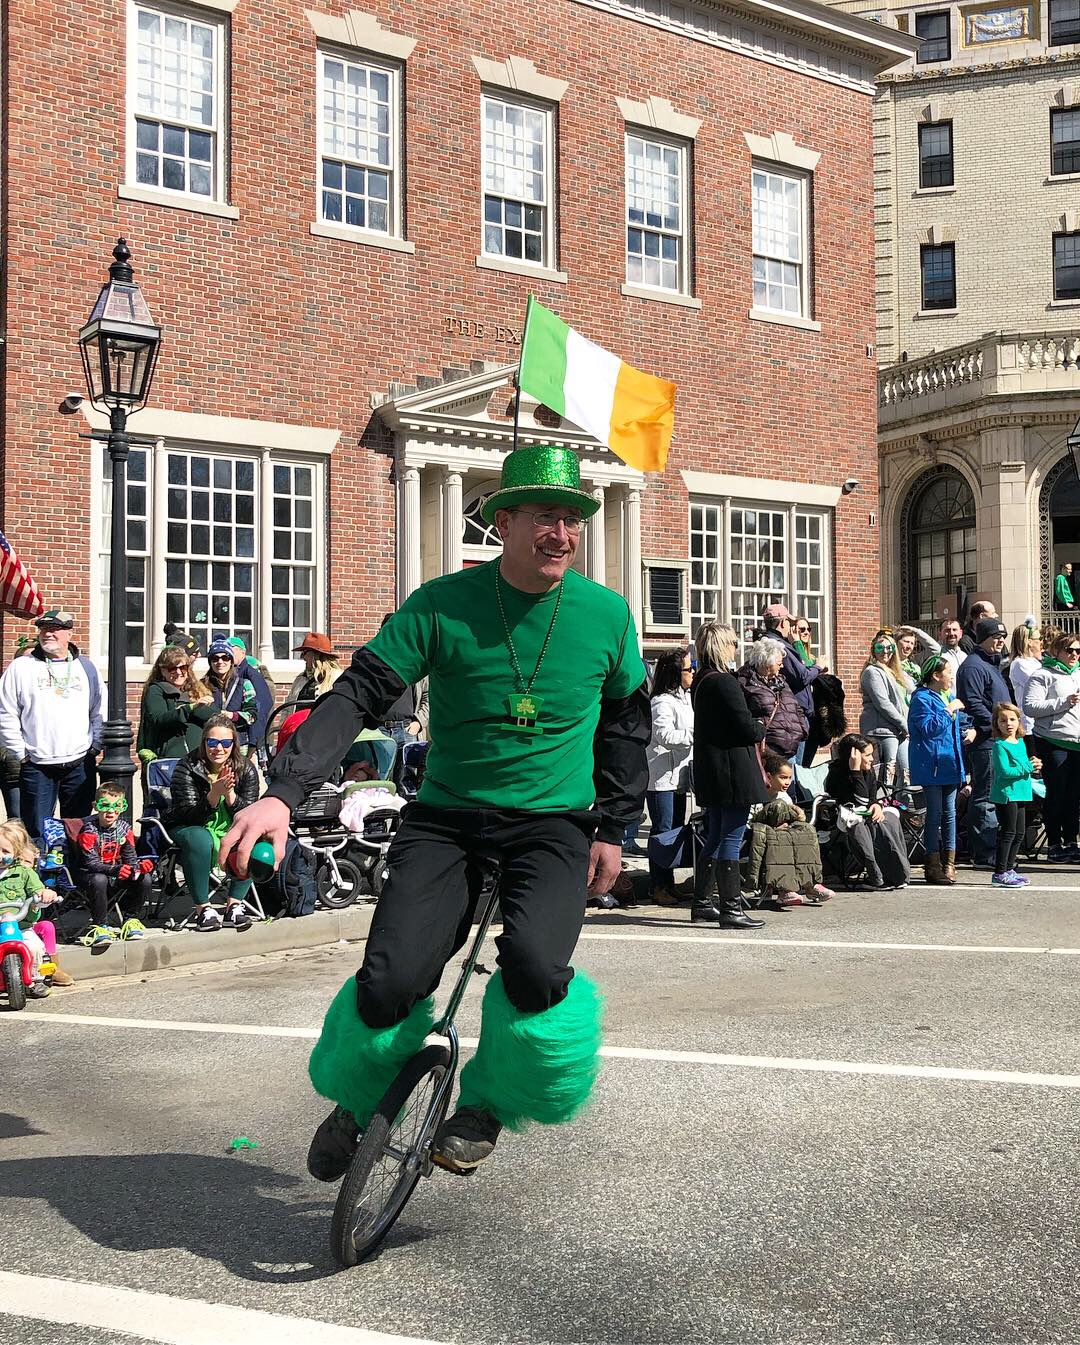 Derek in the St. Patrick's Day Parade